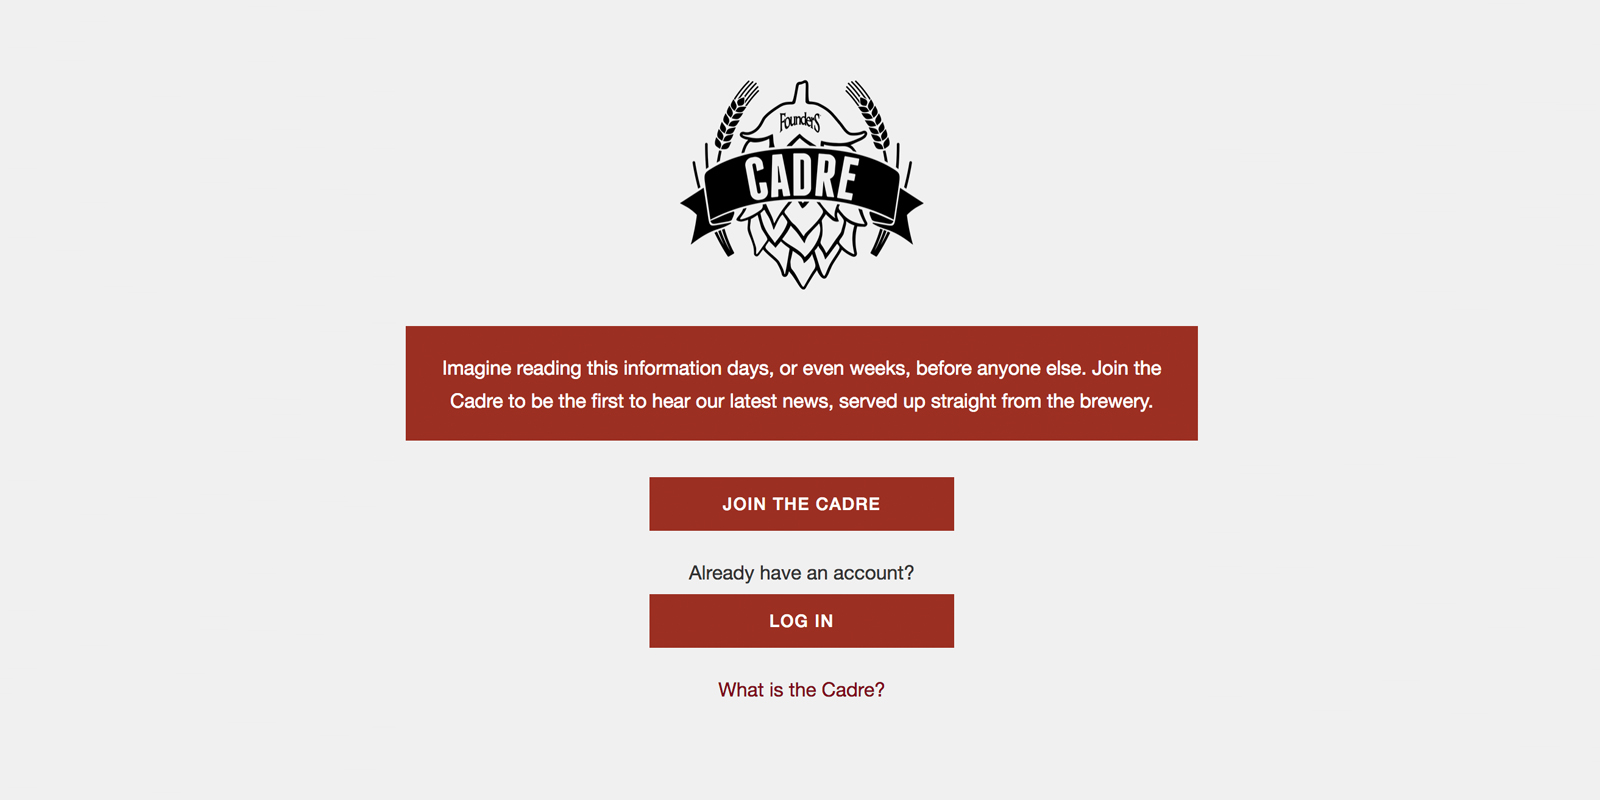 Join the Cadre for Founders brewing Co.